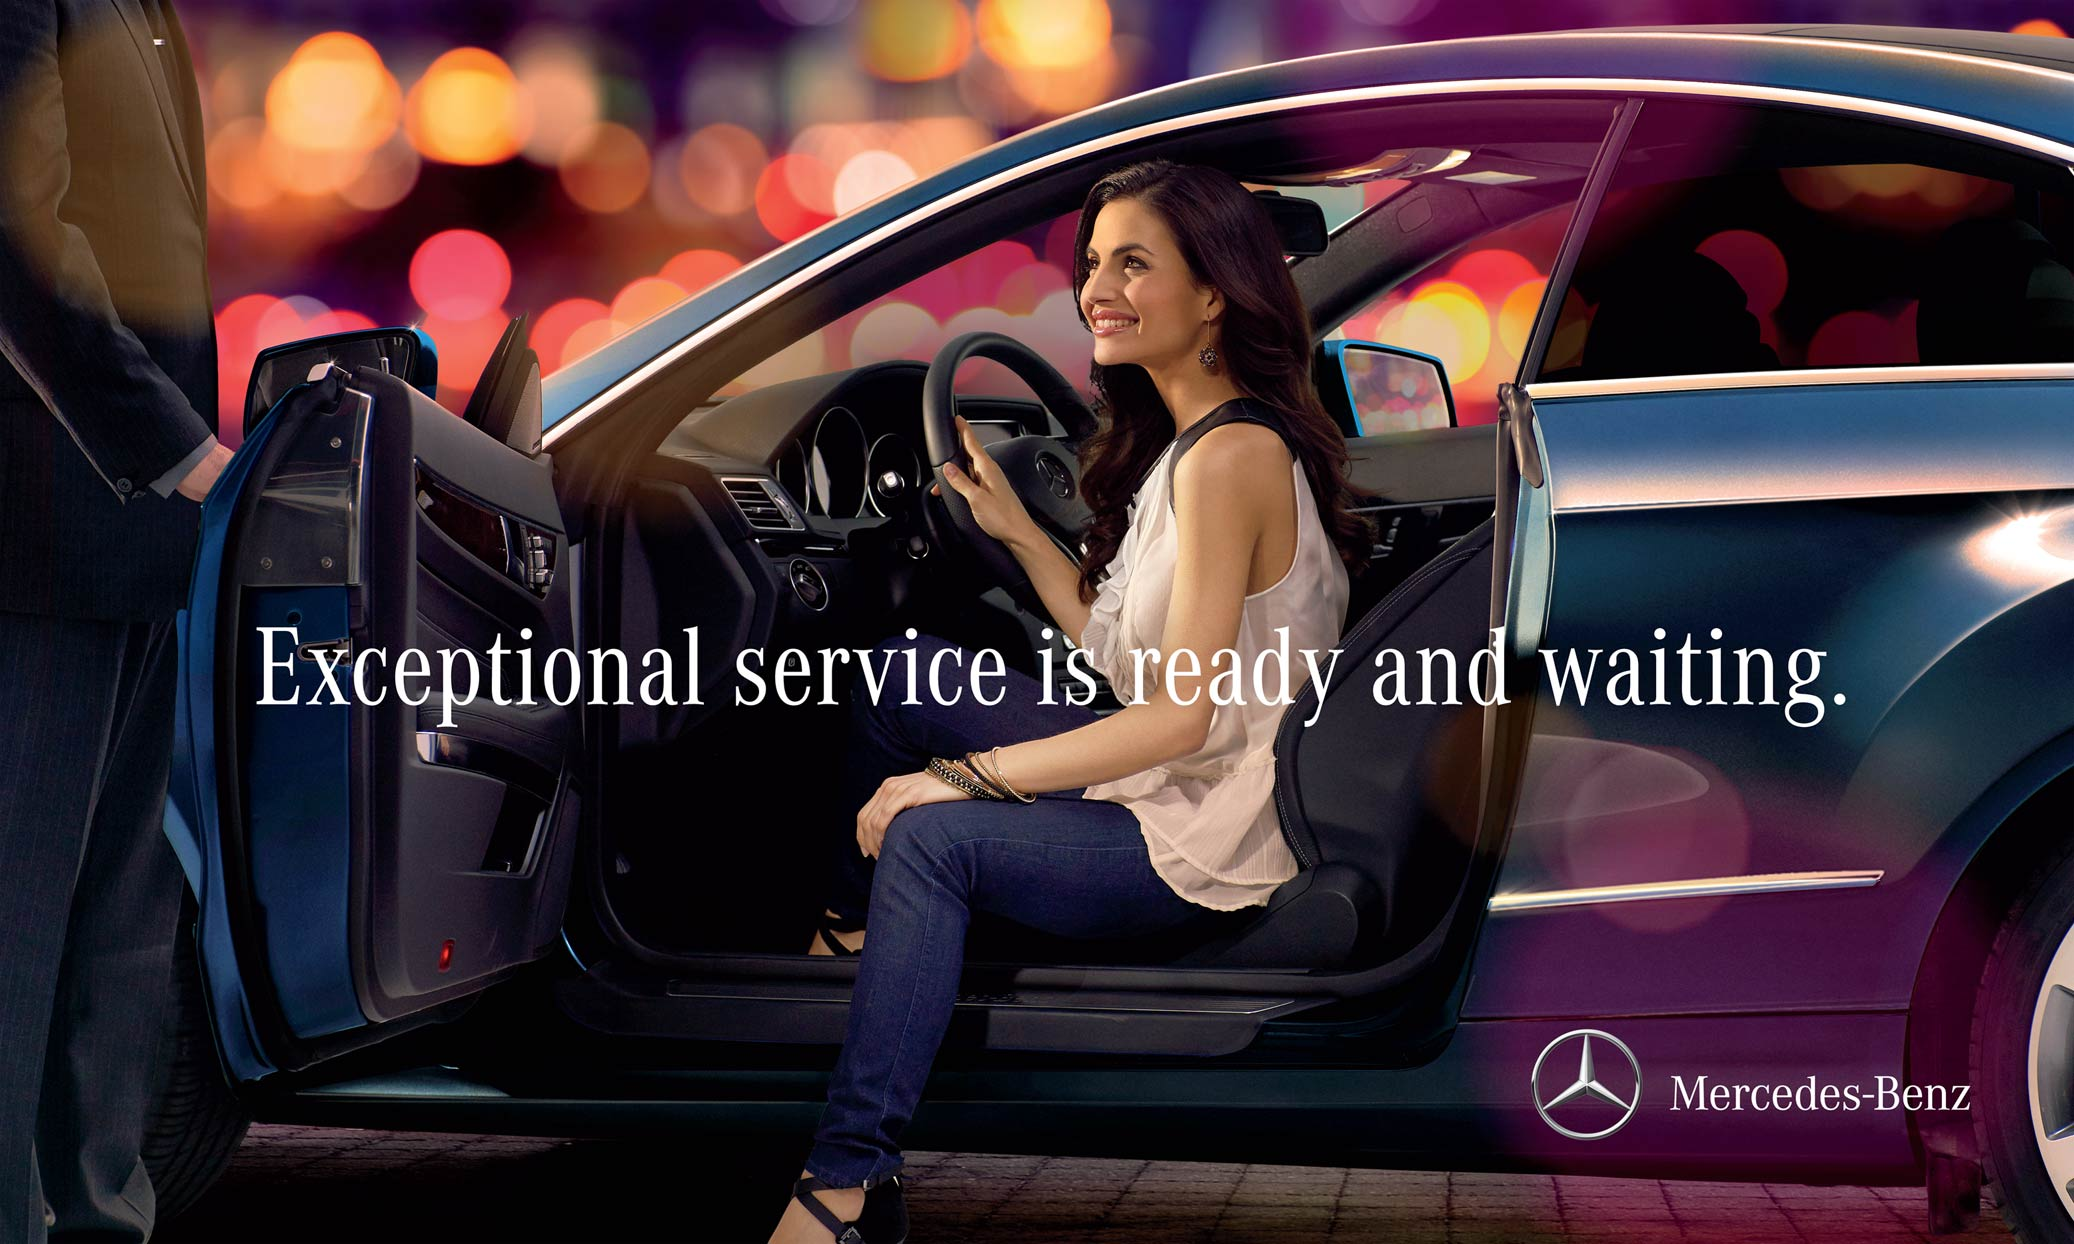 Mark DeLong - Commercial Photography - Man holding door for a woman getting out of a Mecedes-Benz.